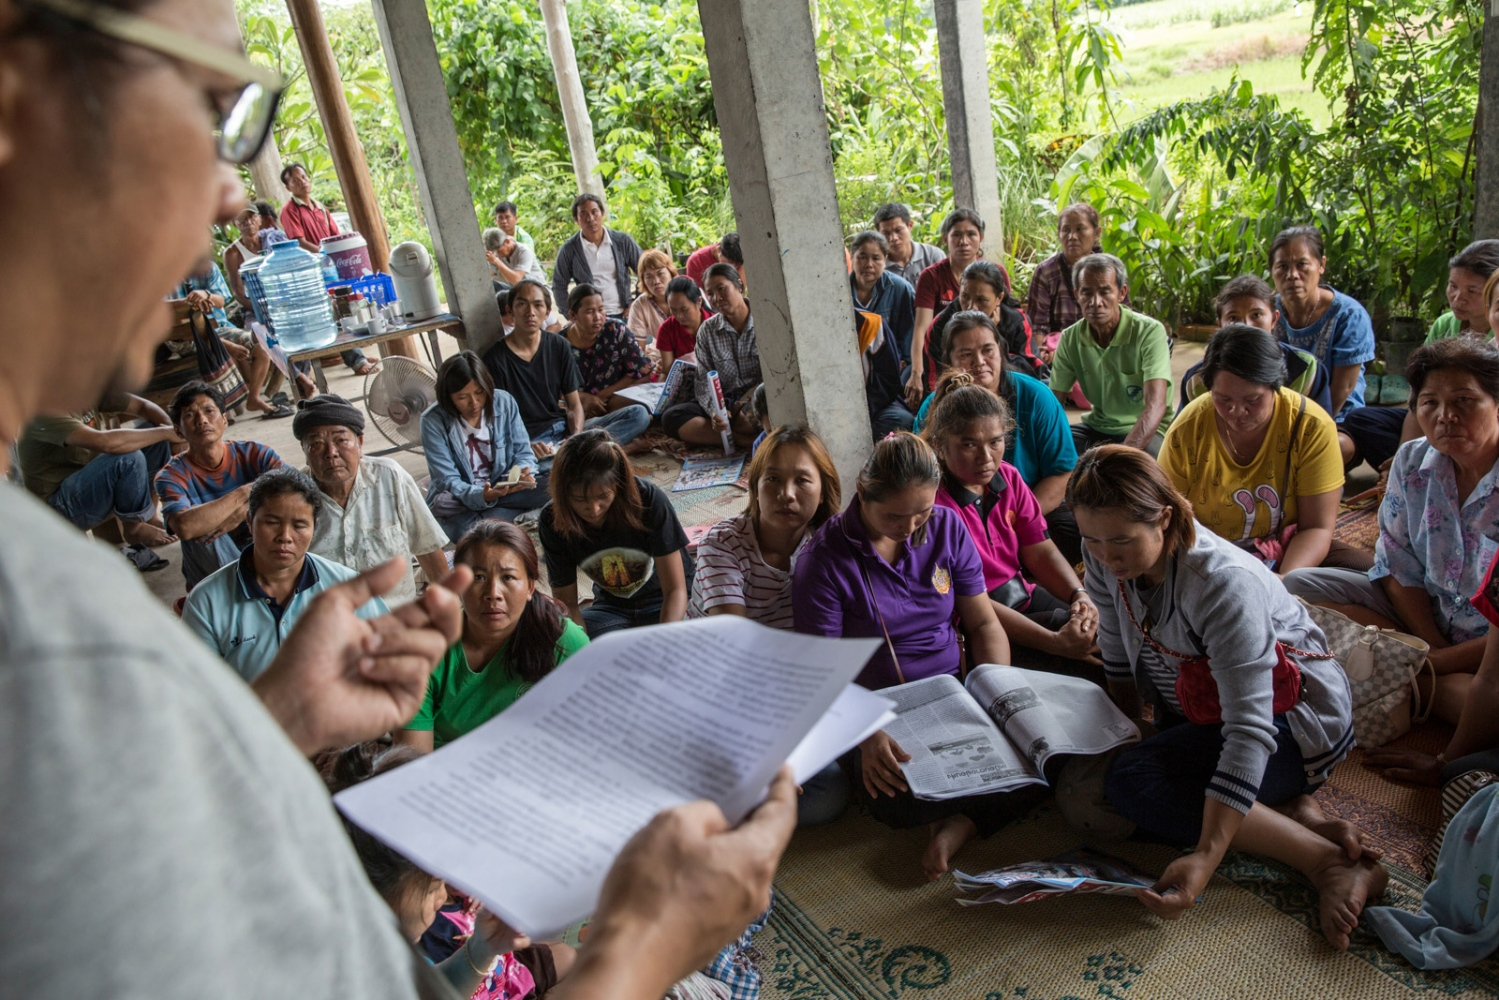 Environmental activist Lertsak Kumkongsak (left) talks to members of the Khon Rak Ban Kerd environmental group, the Rak Ban Han Naew Group and a community-based group of villagers from Pak Chom District opposing a coal mining project. They gather here prior to a protest march on City Hall in Loei city in July 2016. Because of Khon Rak Ban Kerd's experience in fighting environmental issues they now help, assist and train other groups who have just begun.